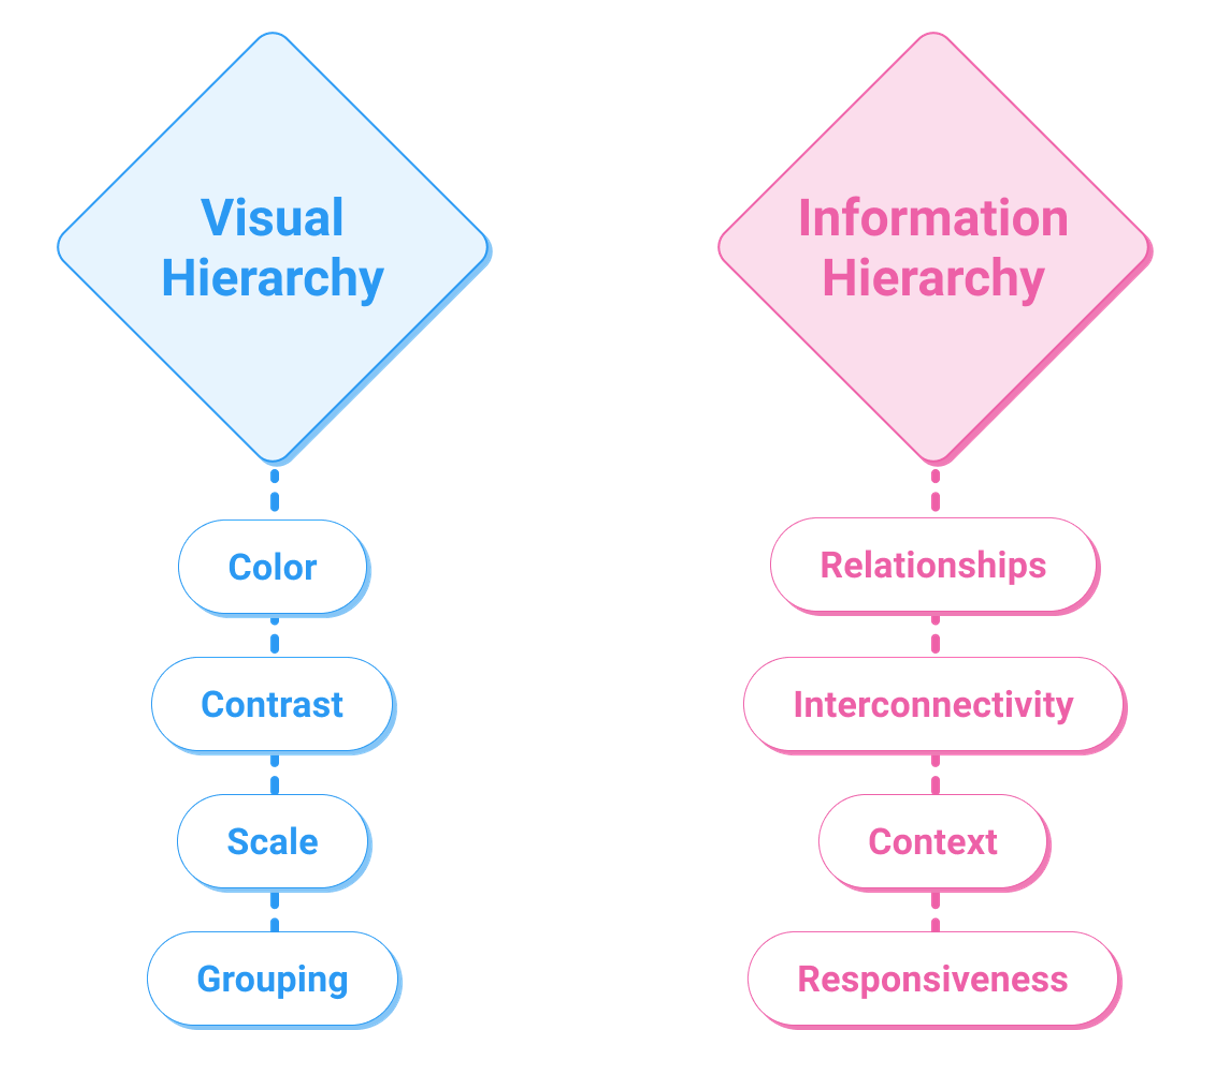 Attributes of visual and information hierarchy